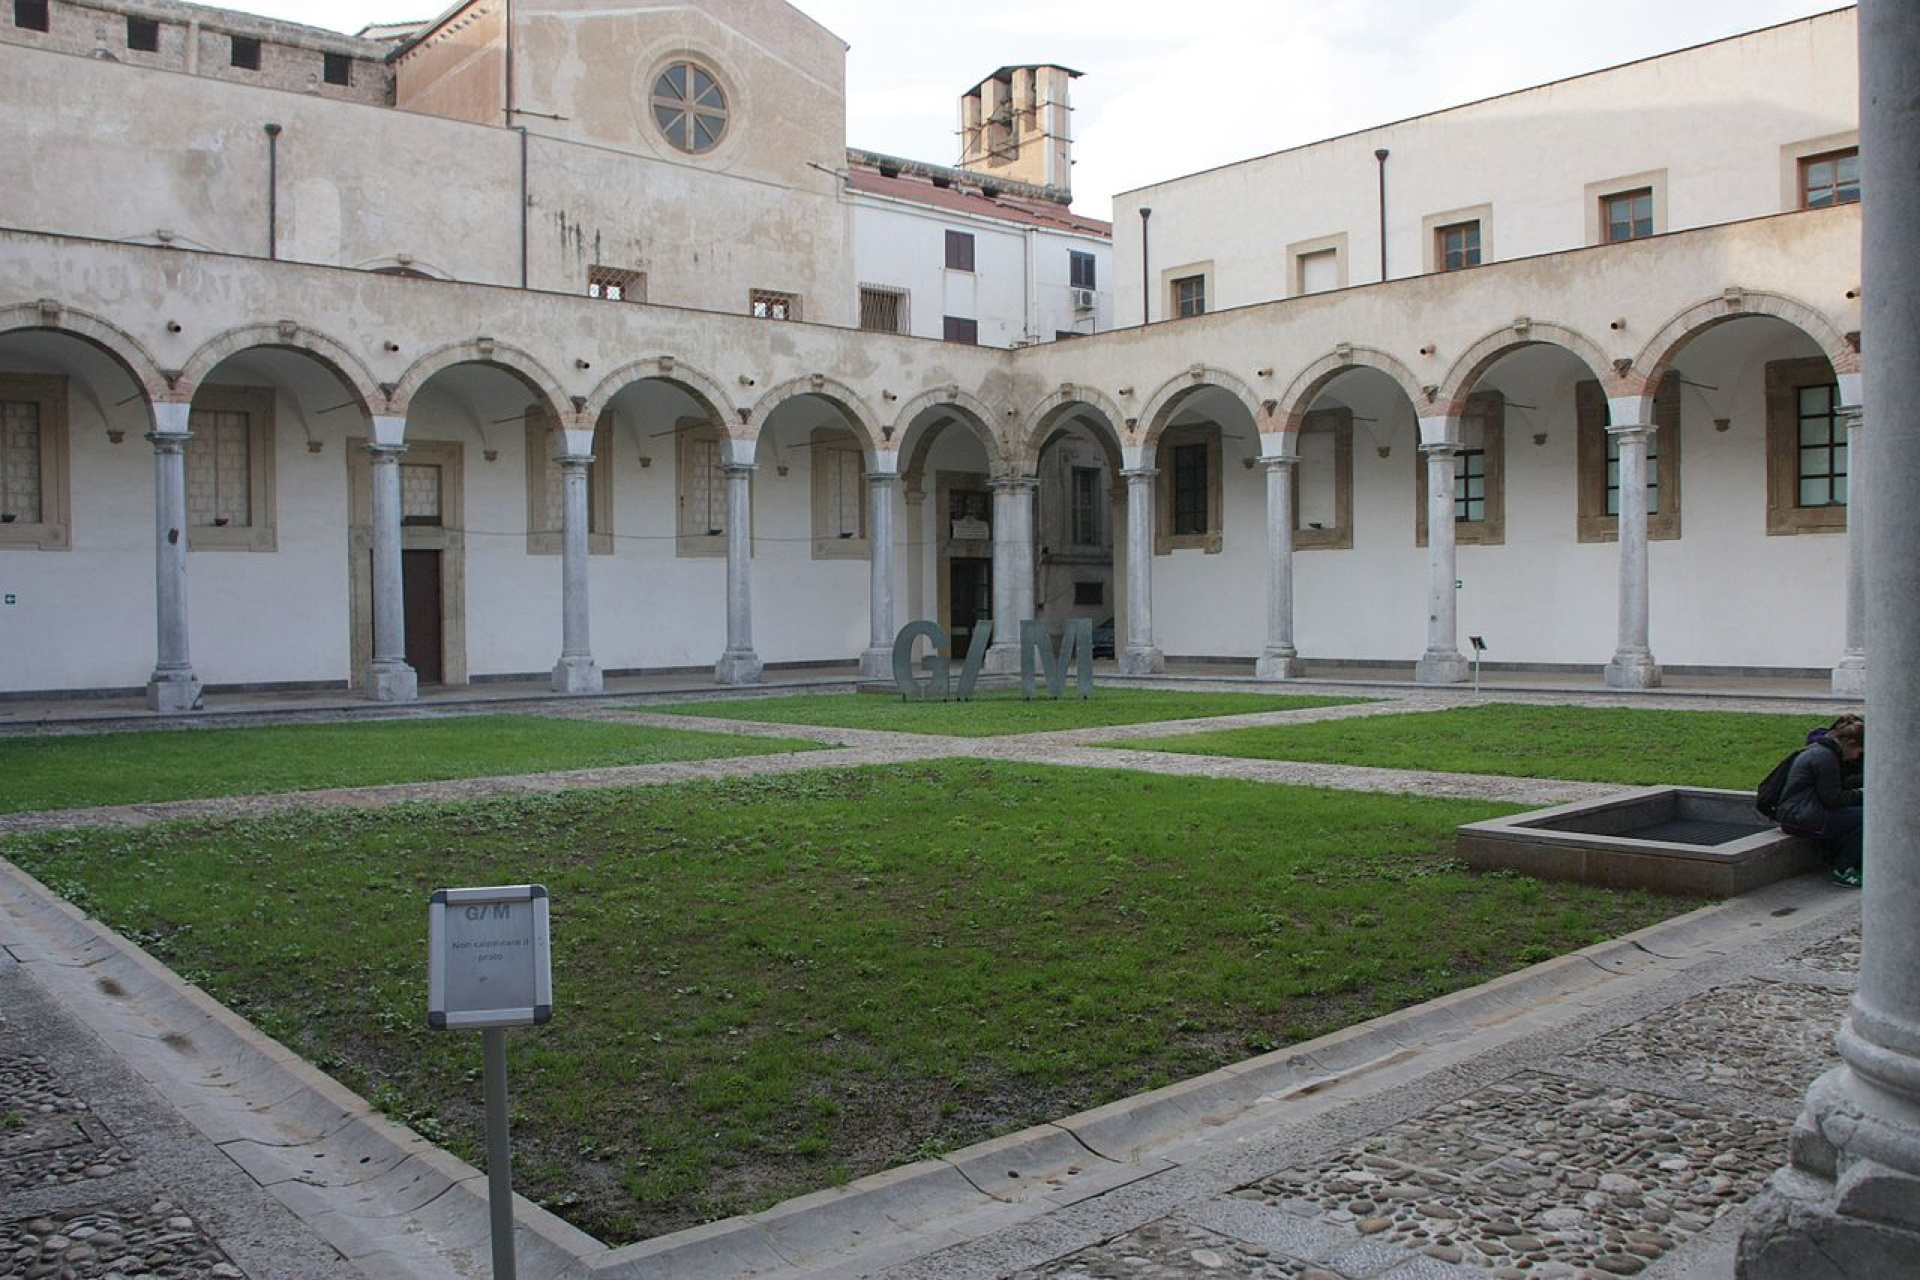 Palermo, city of inclusion of art and architecture